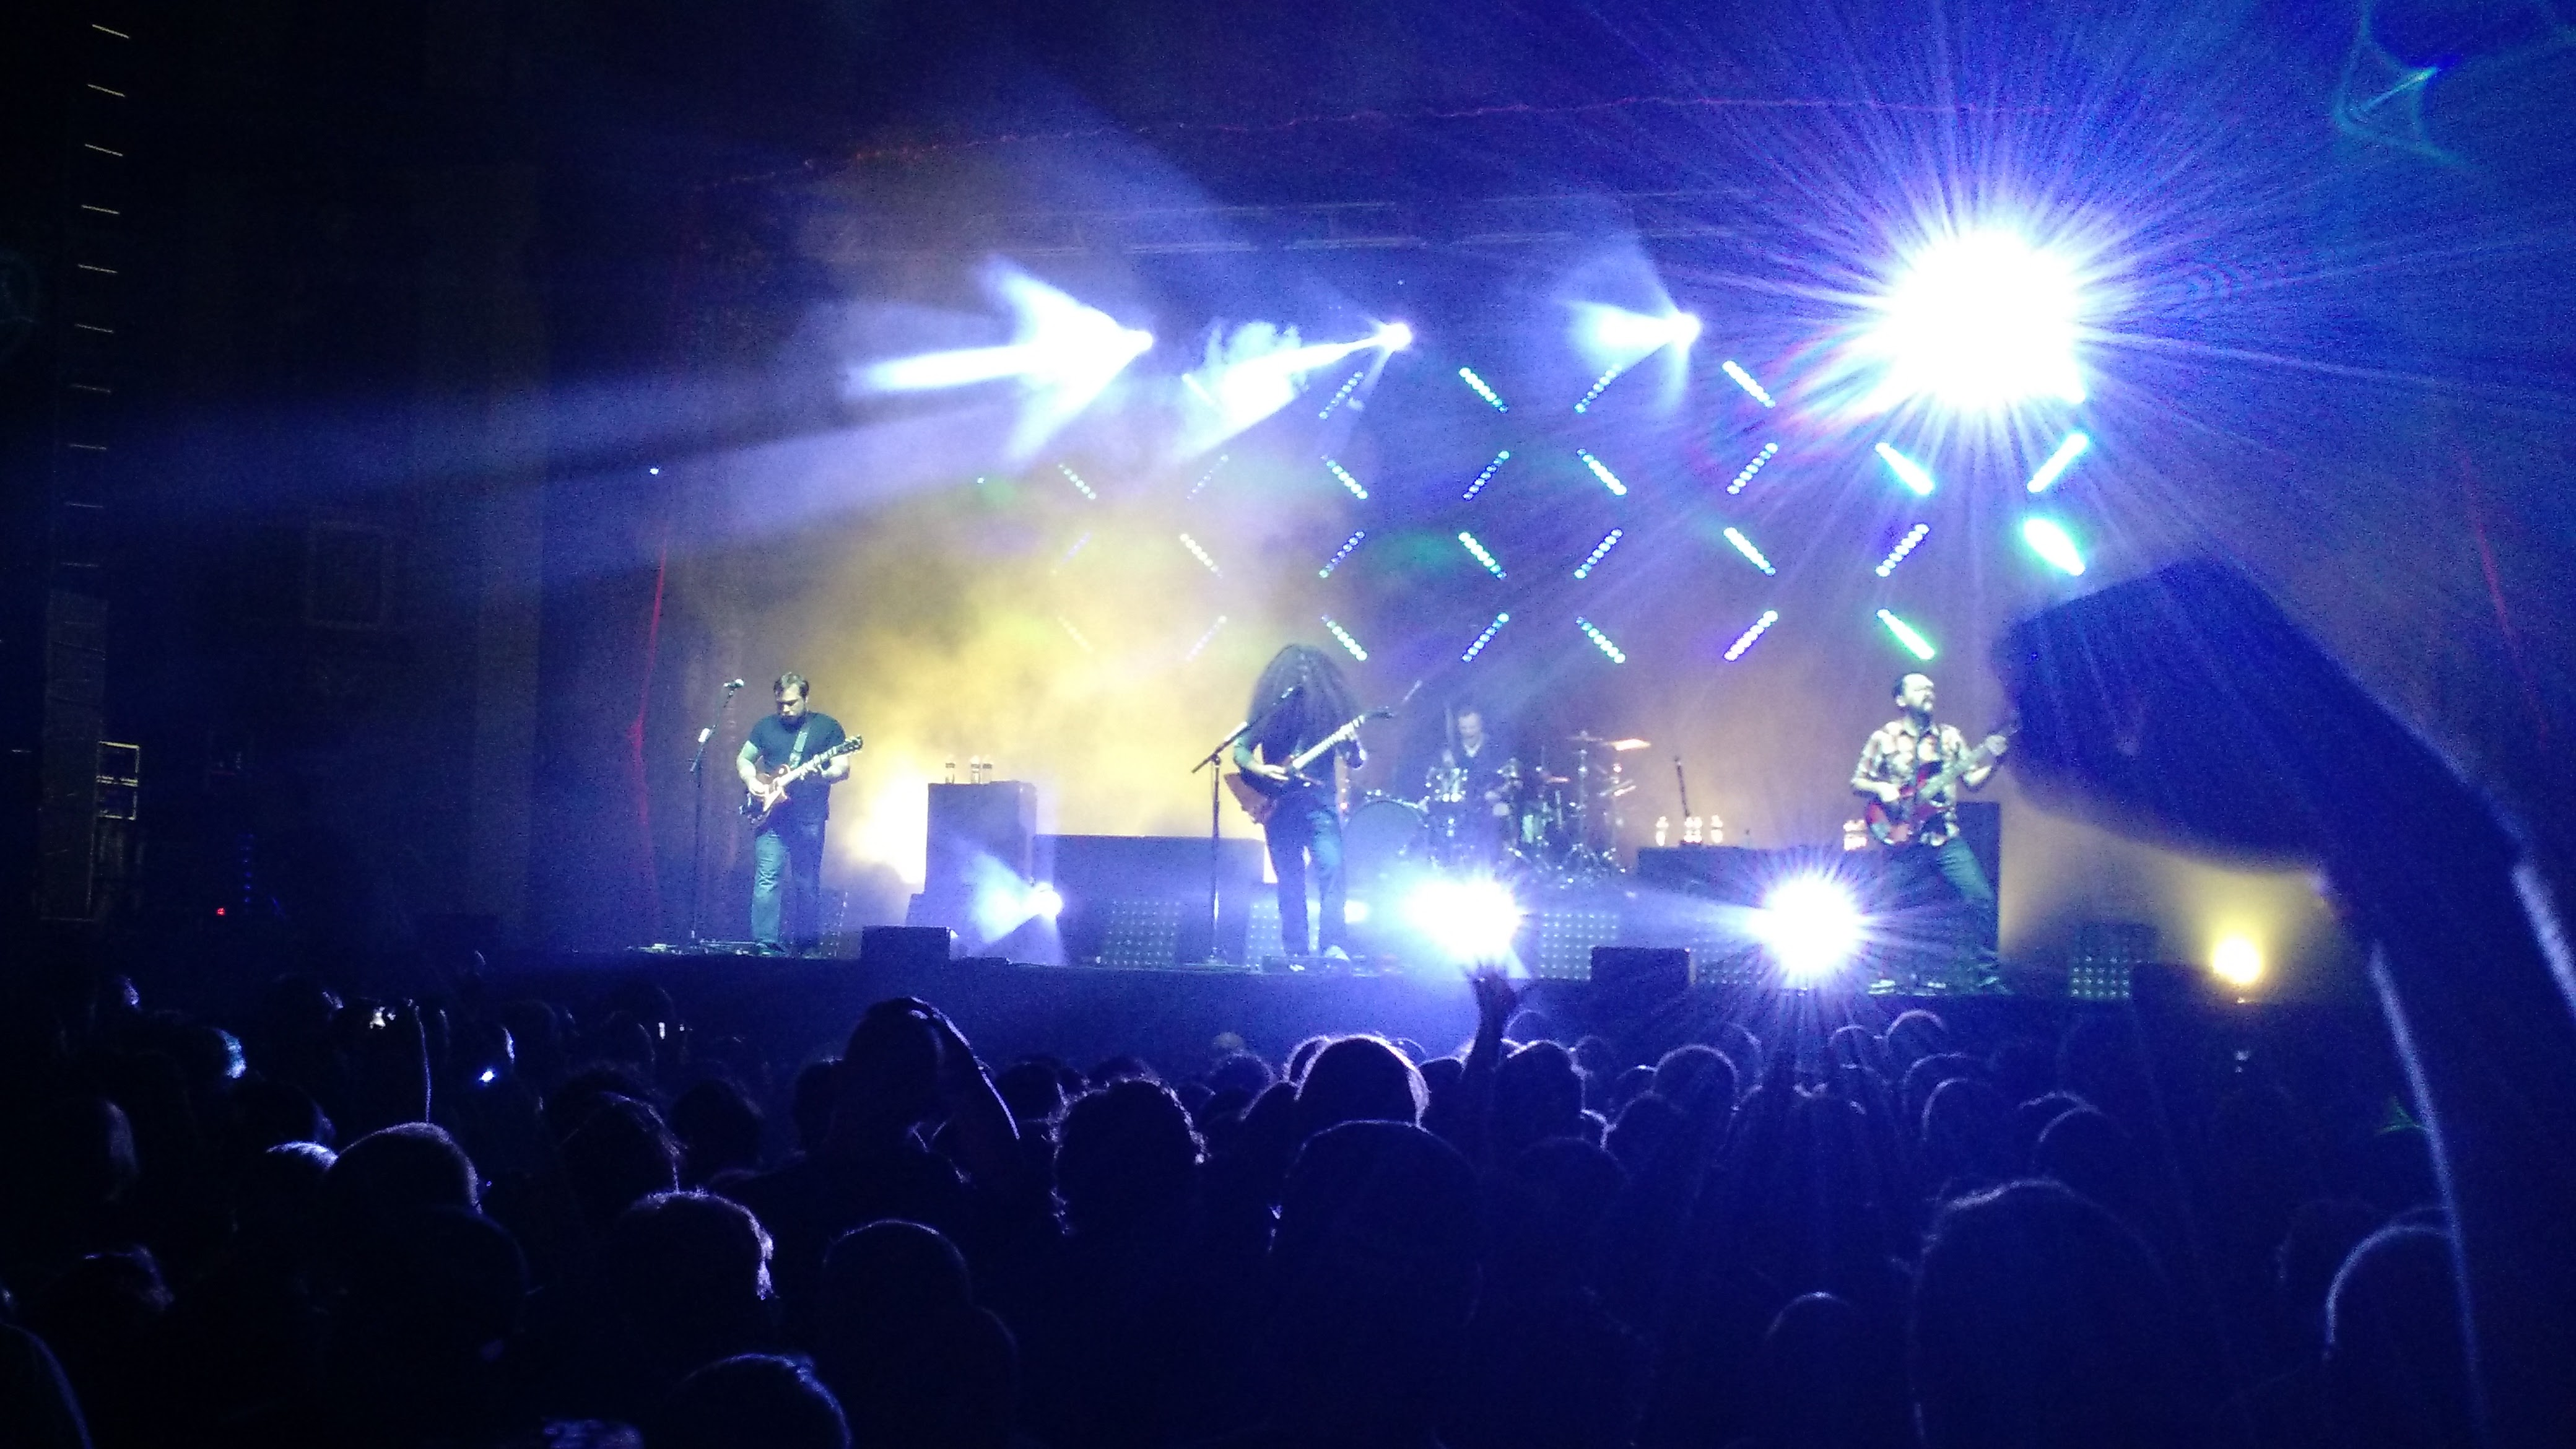 Concert Review: Coheed and Cambria - The Music Pill